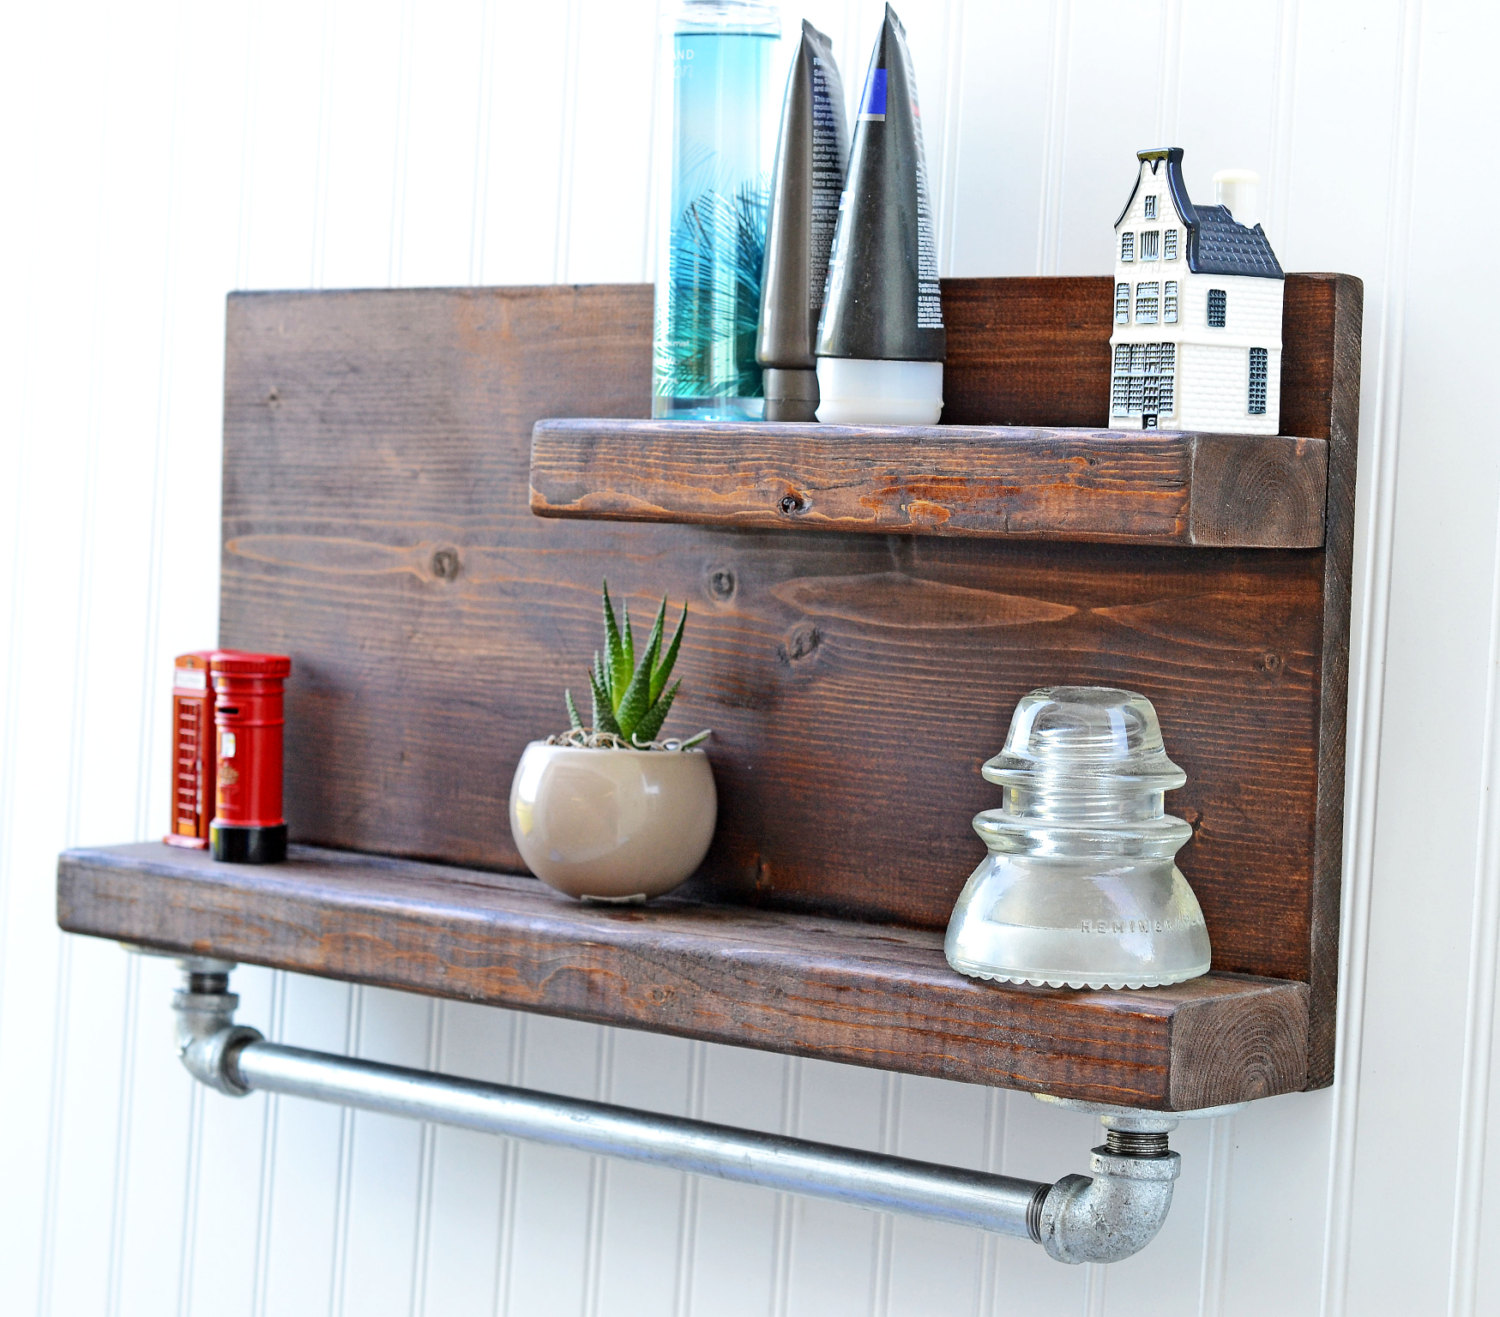 21 Amazing Shelf Rack Ideas For Your Home: 16 Amazing DIY Projects For Your Home You Can Make From